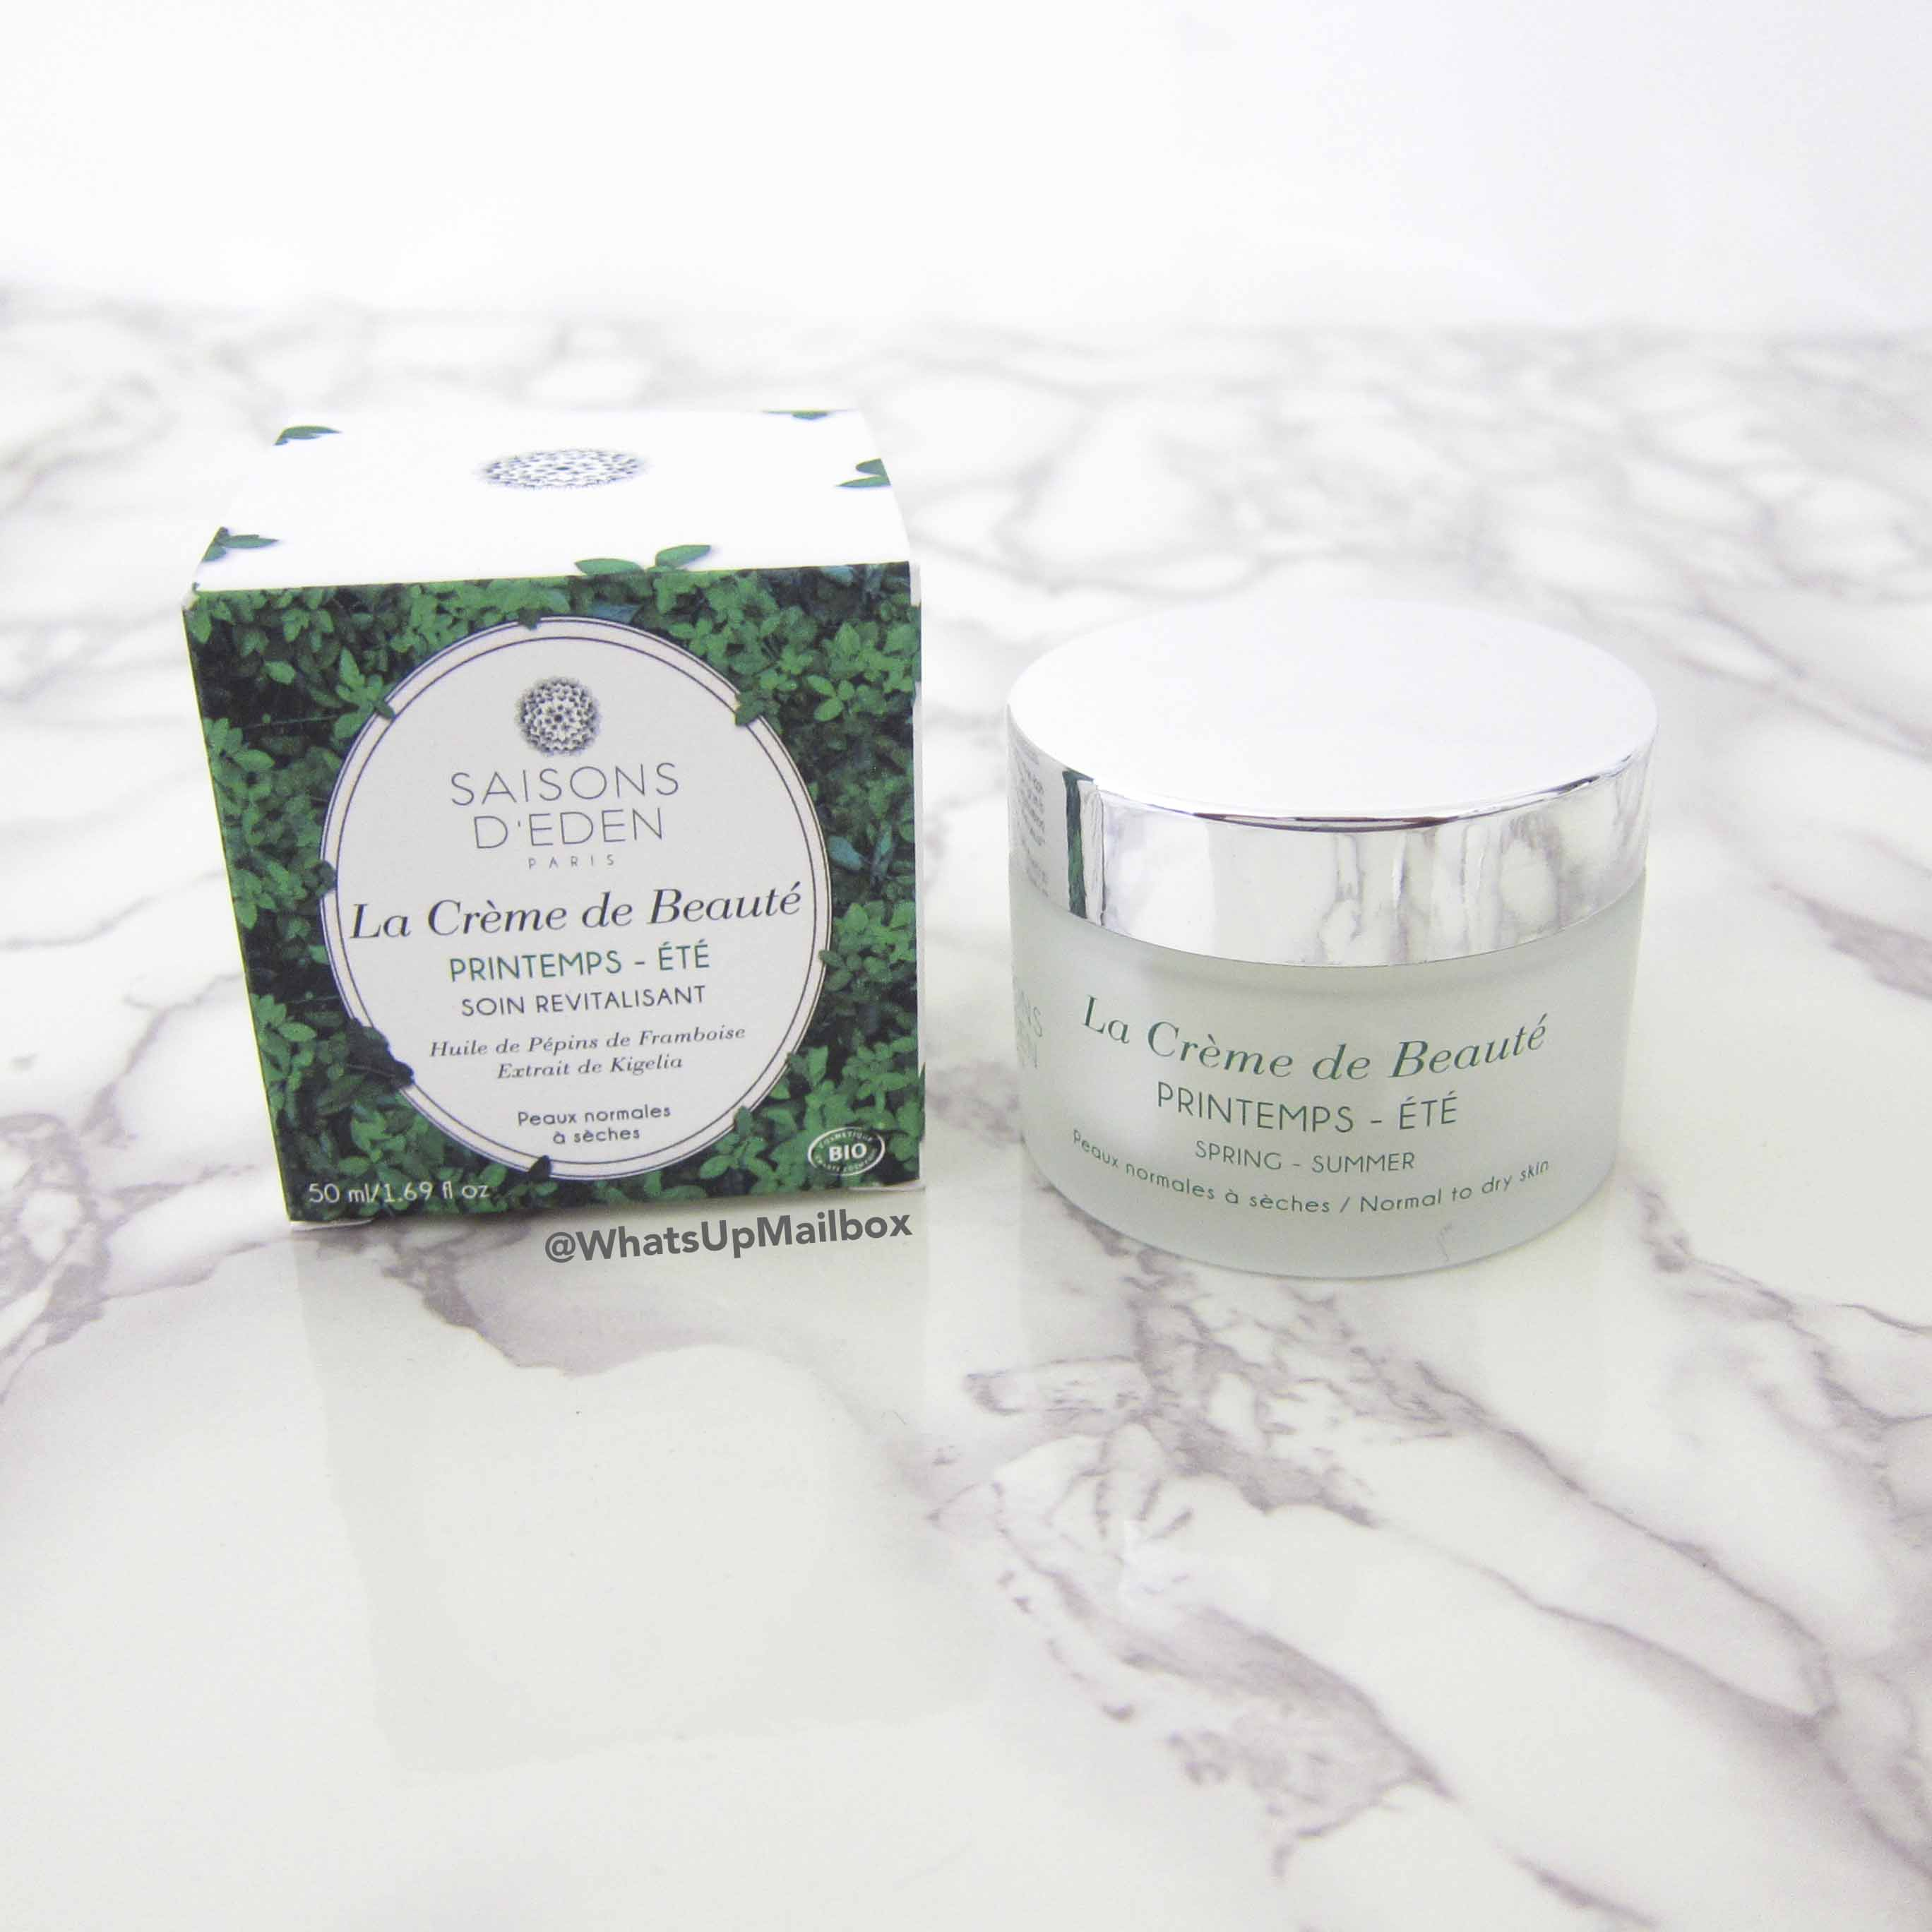 Oui Please Vol. 2.3 - Saisons D'Eden Paris Le Creme De Beaute Revitalizing Cream